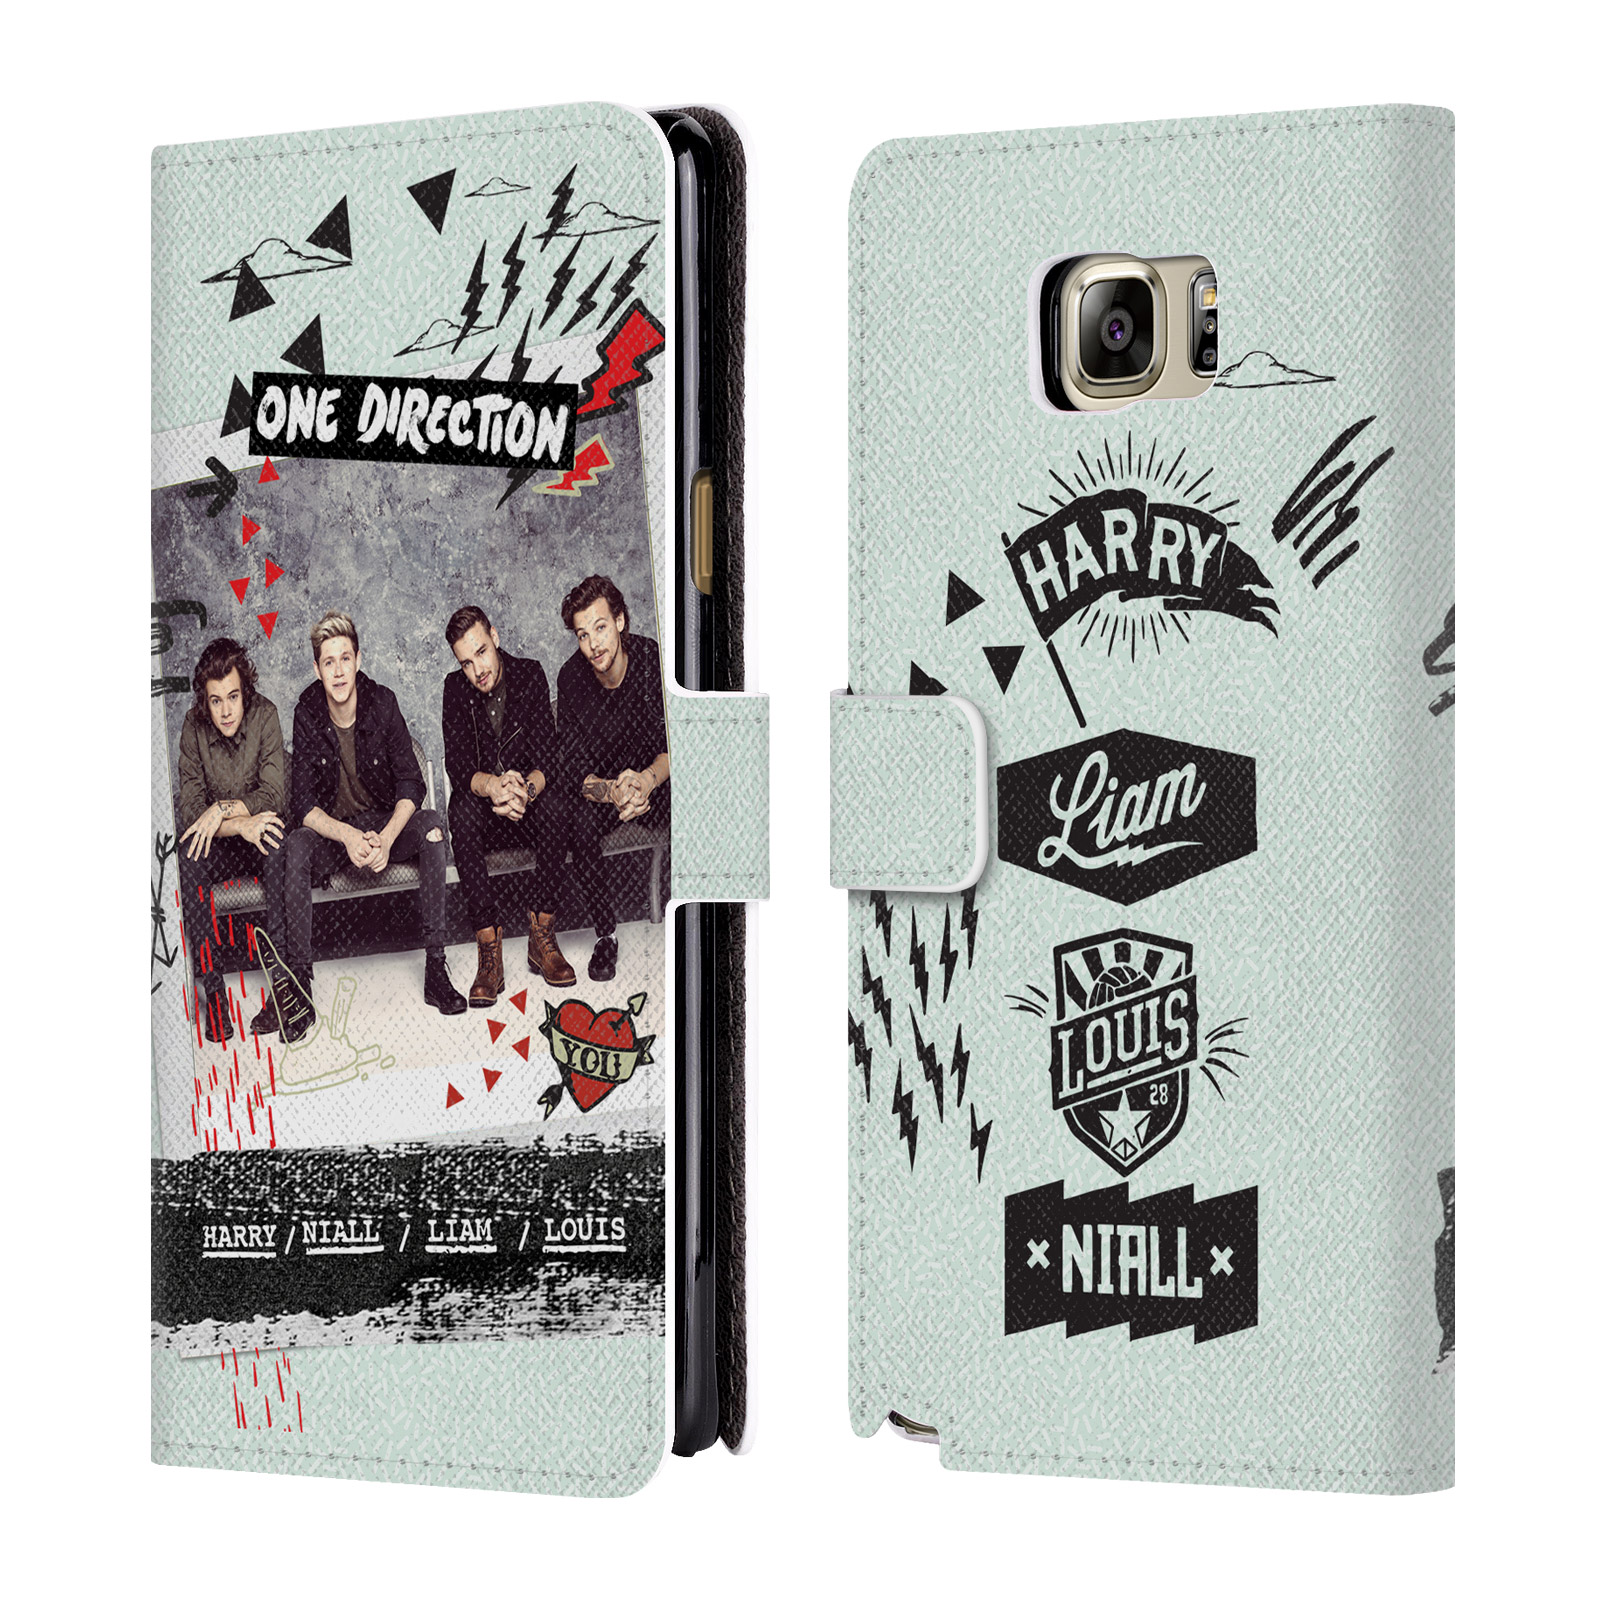 OFFICIAL ONE DIRECTION MIDNIGHT MEMORIES SHOTS GROUP LEATHER BOOK WALLET CASE COVER FOR SAMSUNG PHONES 1